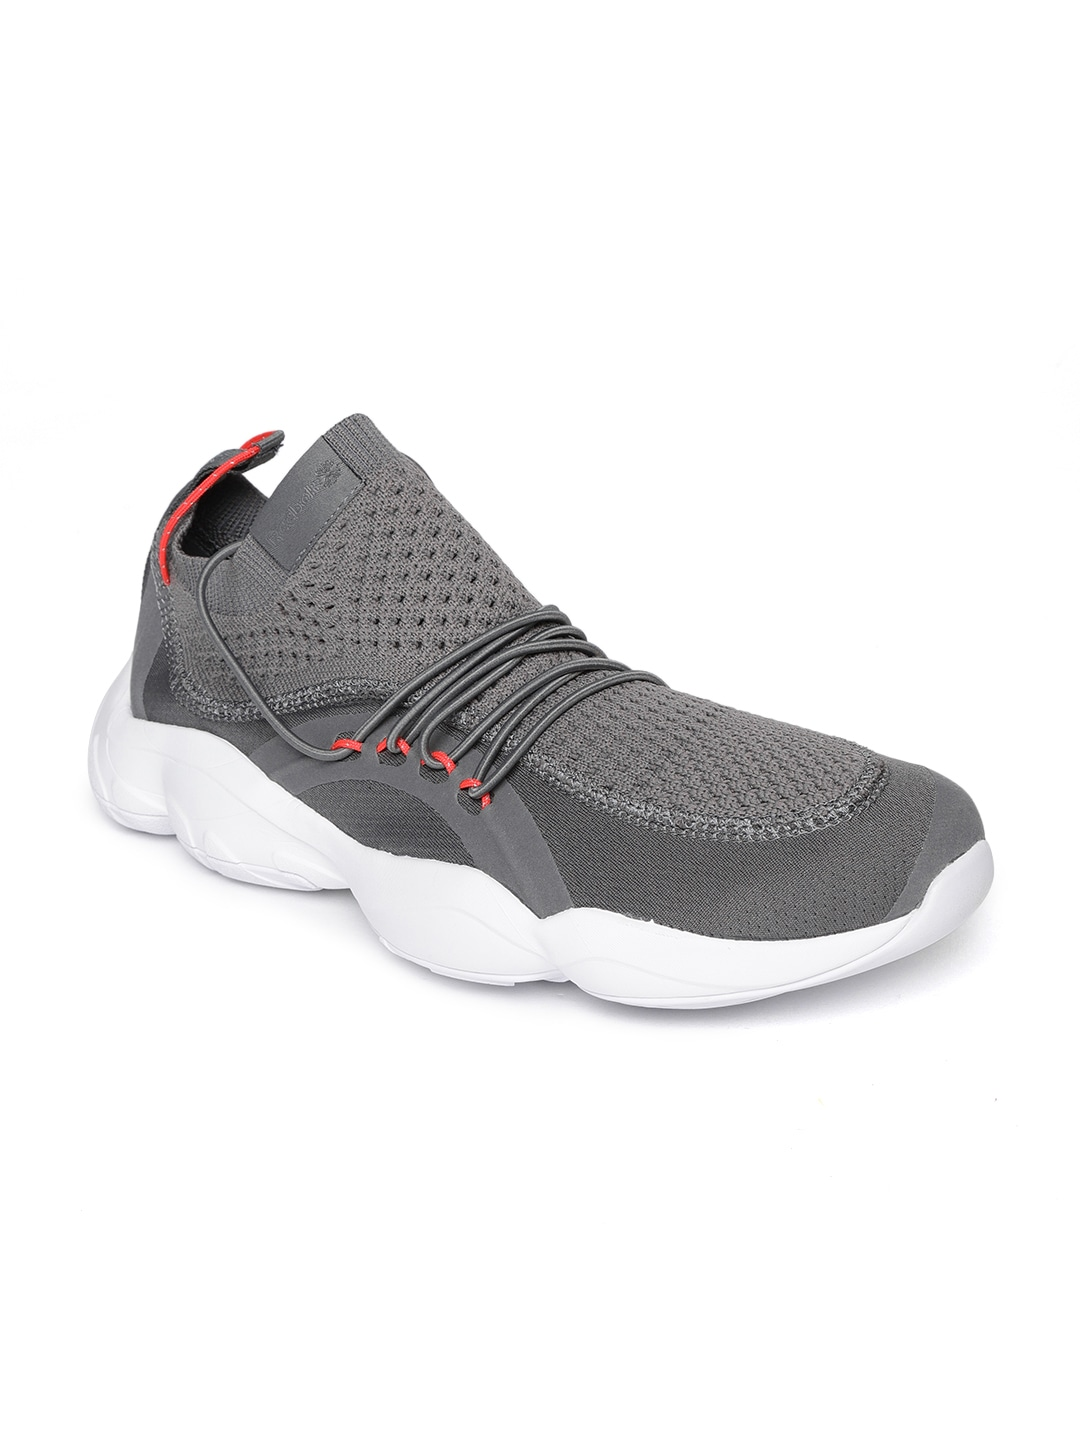 Charcoal Grey DMX Fusion Woven Design Sneakers